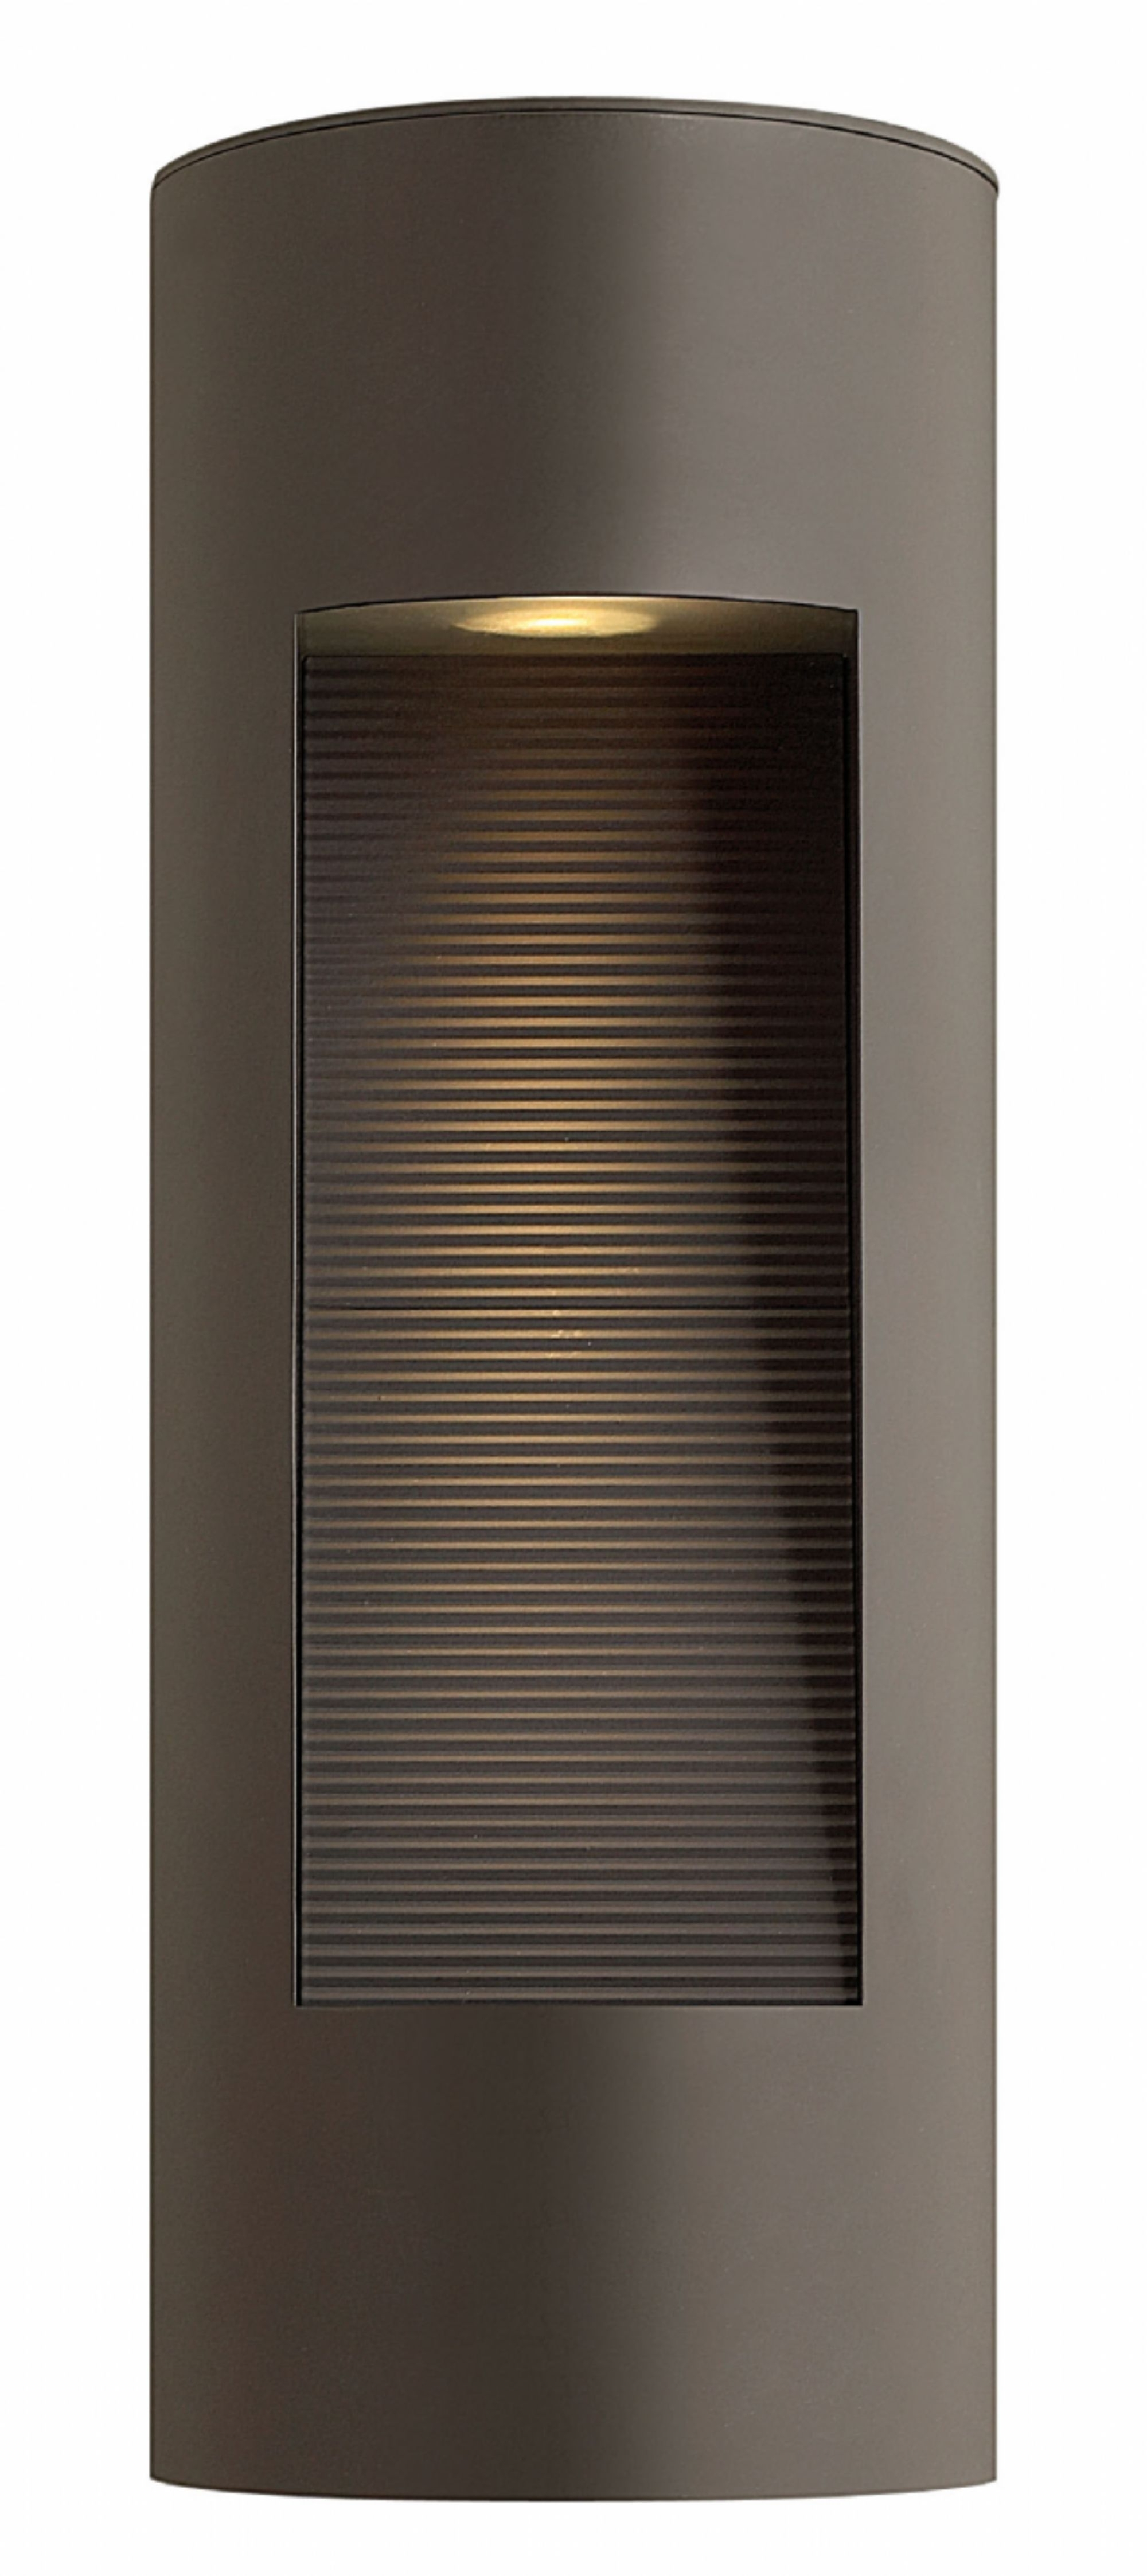 Famous Modern Led Hinkley Lighting For Bronze Luna > Exterior Wall Mount (View 5 of 20)